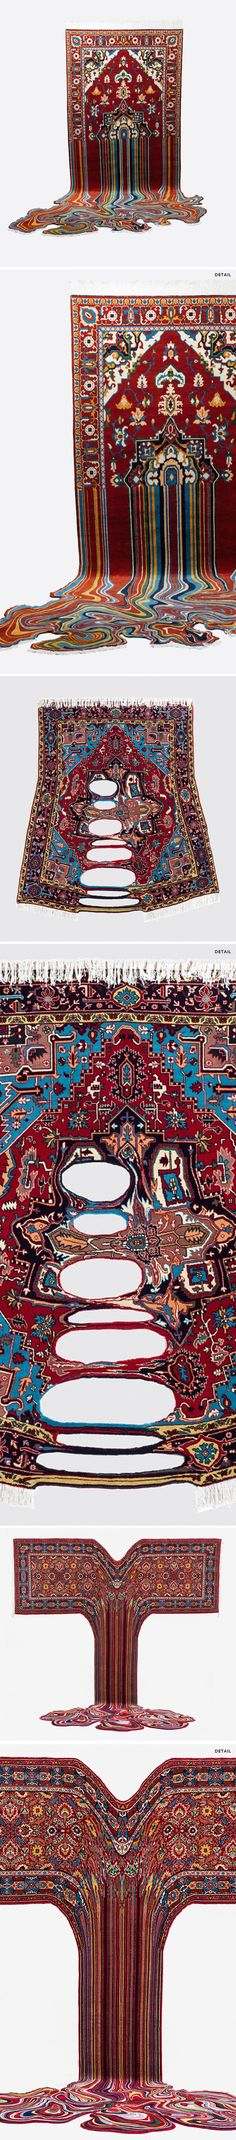 carpets (!?) by faig ahmed